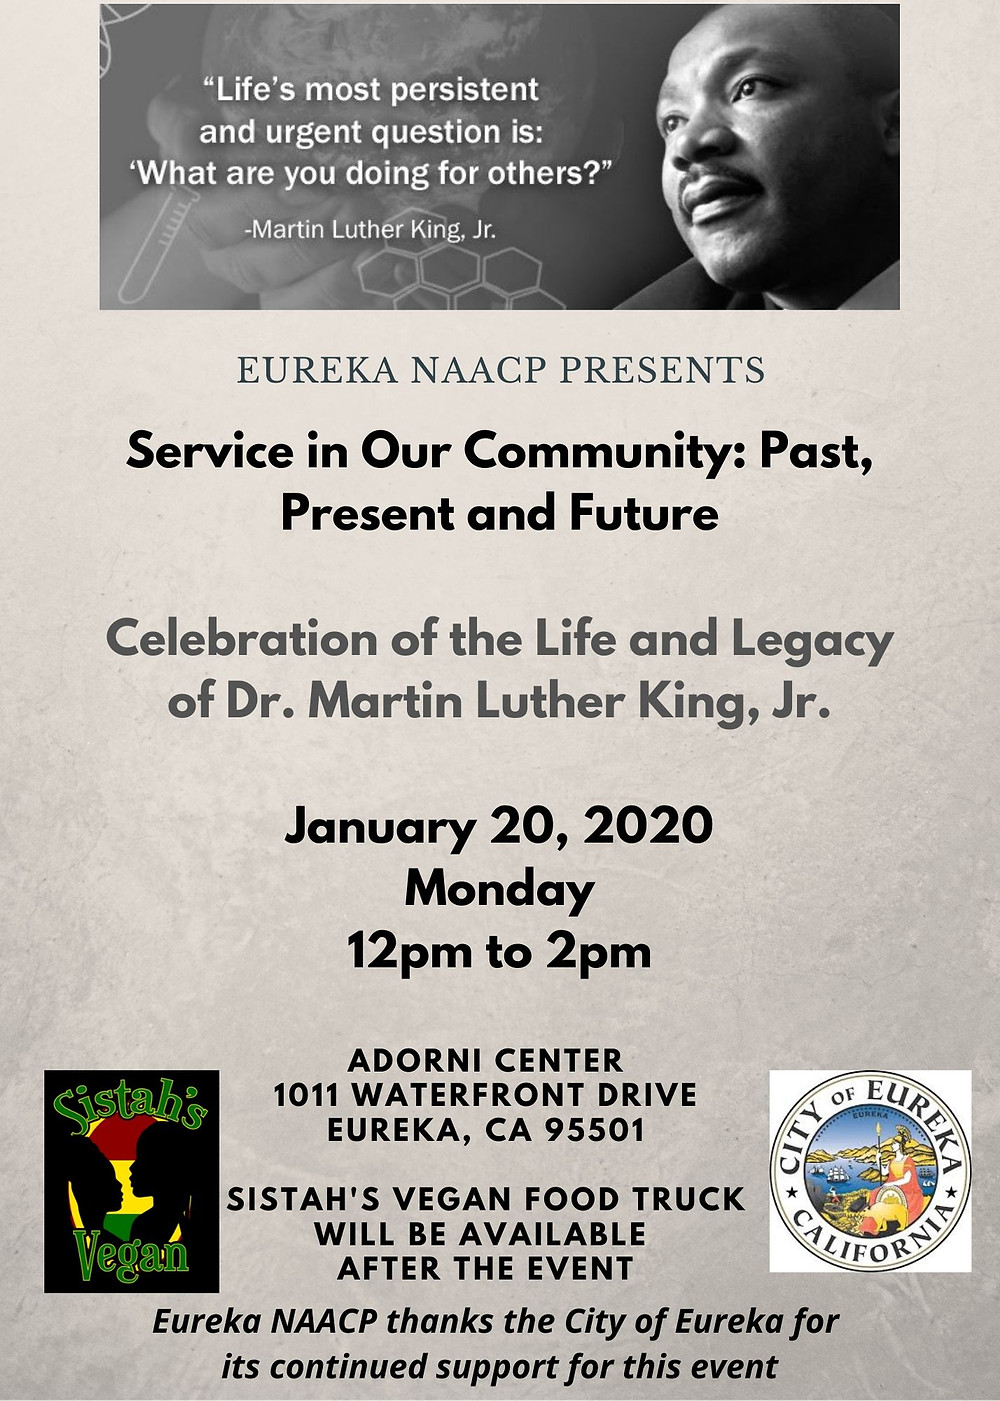 Monday, January 20, 2020   from 12pm to 2pm